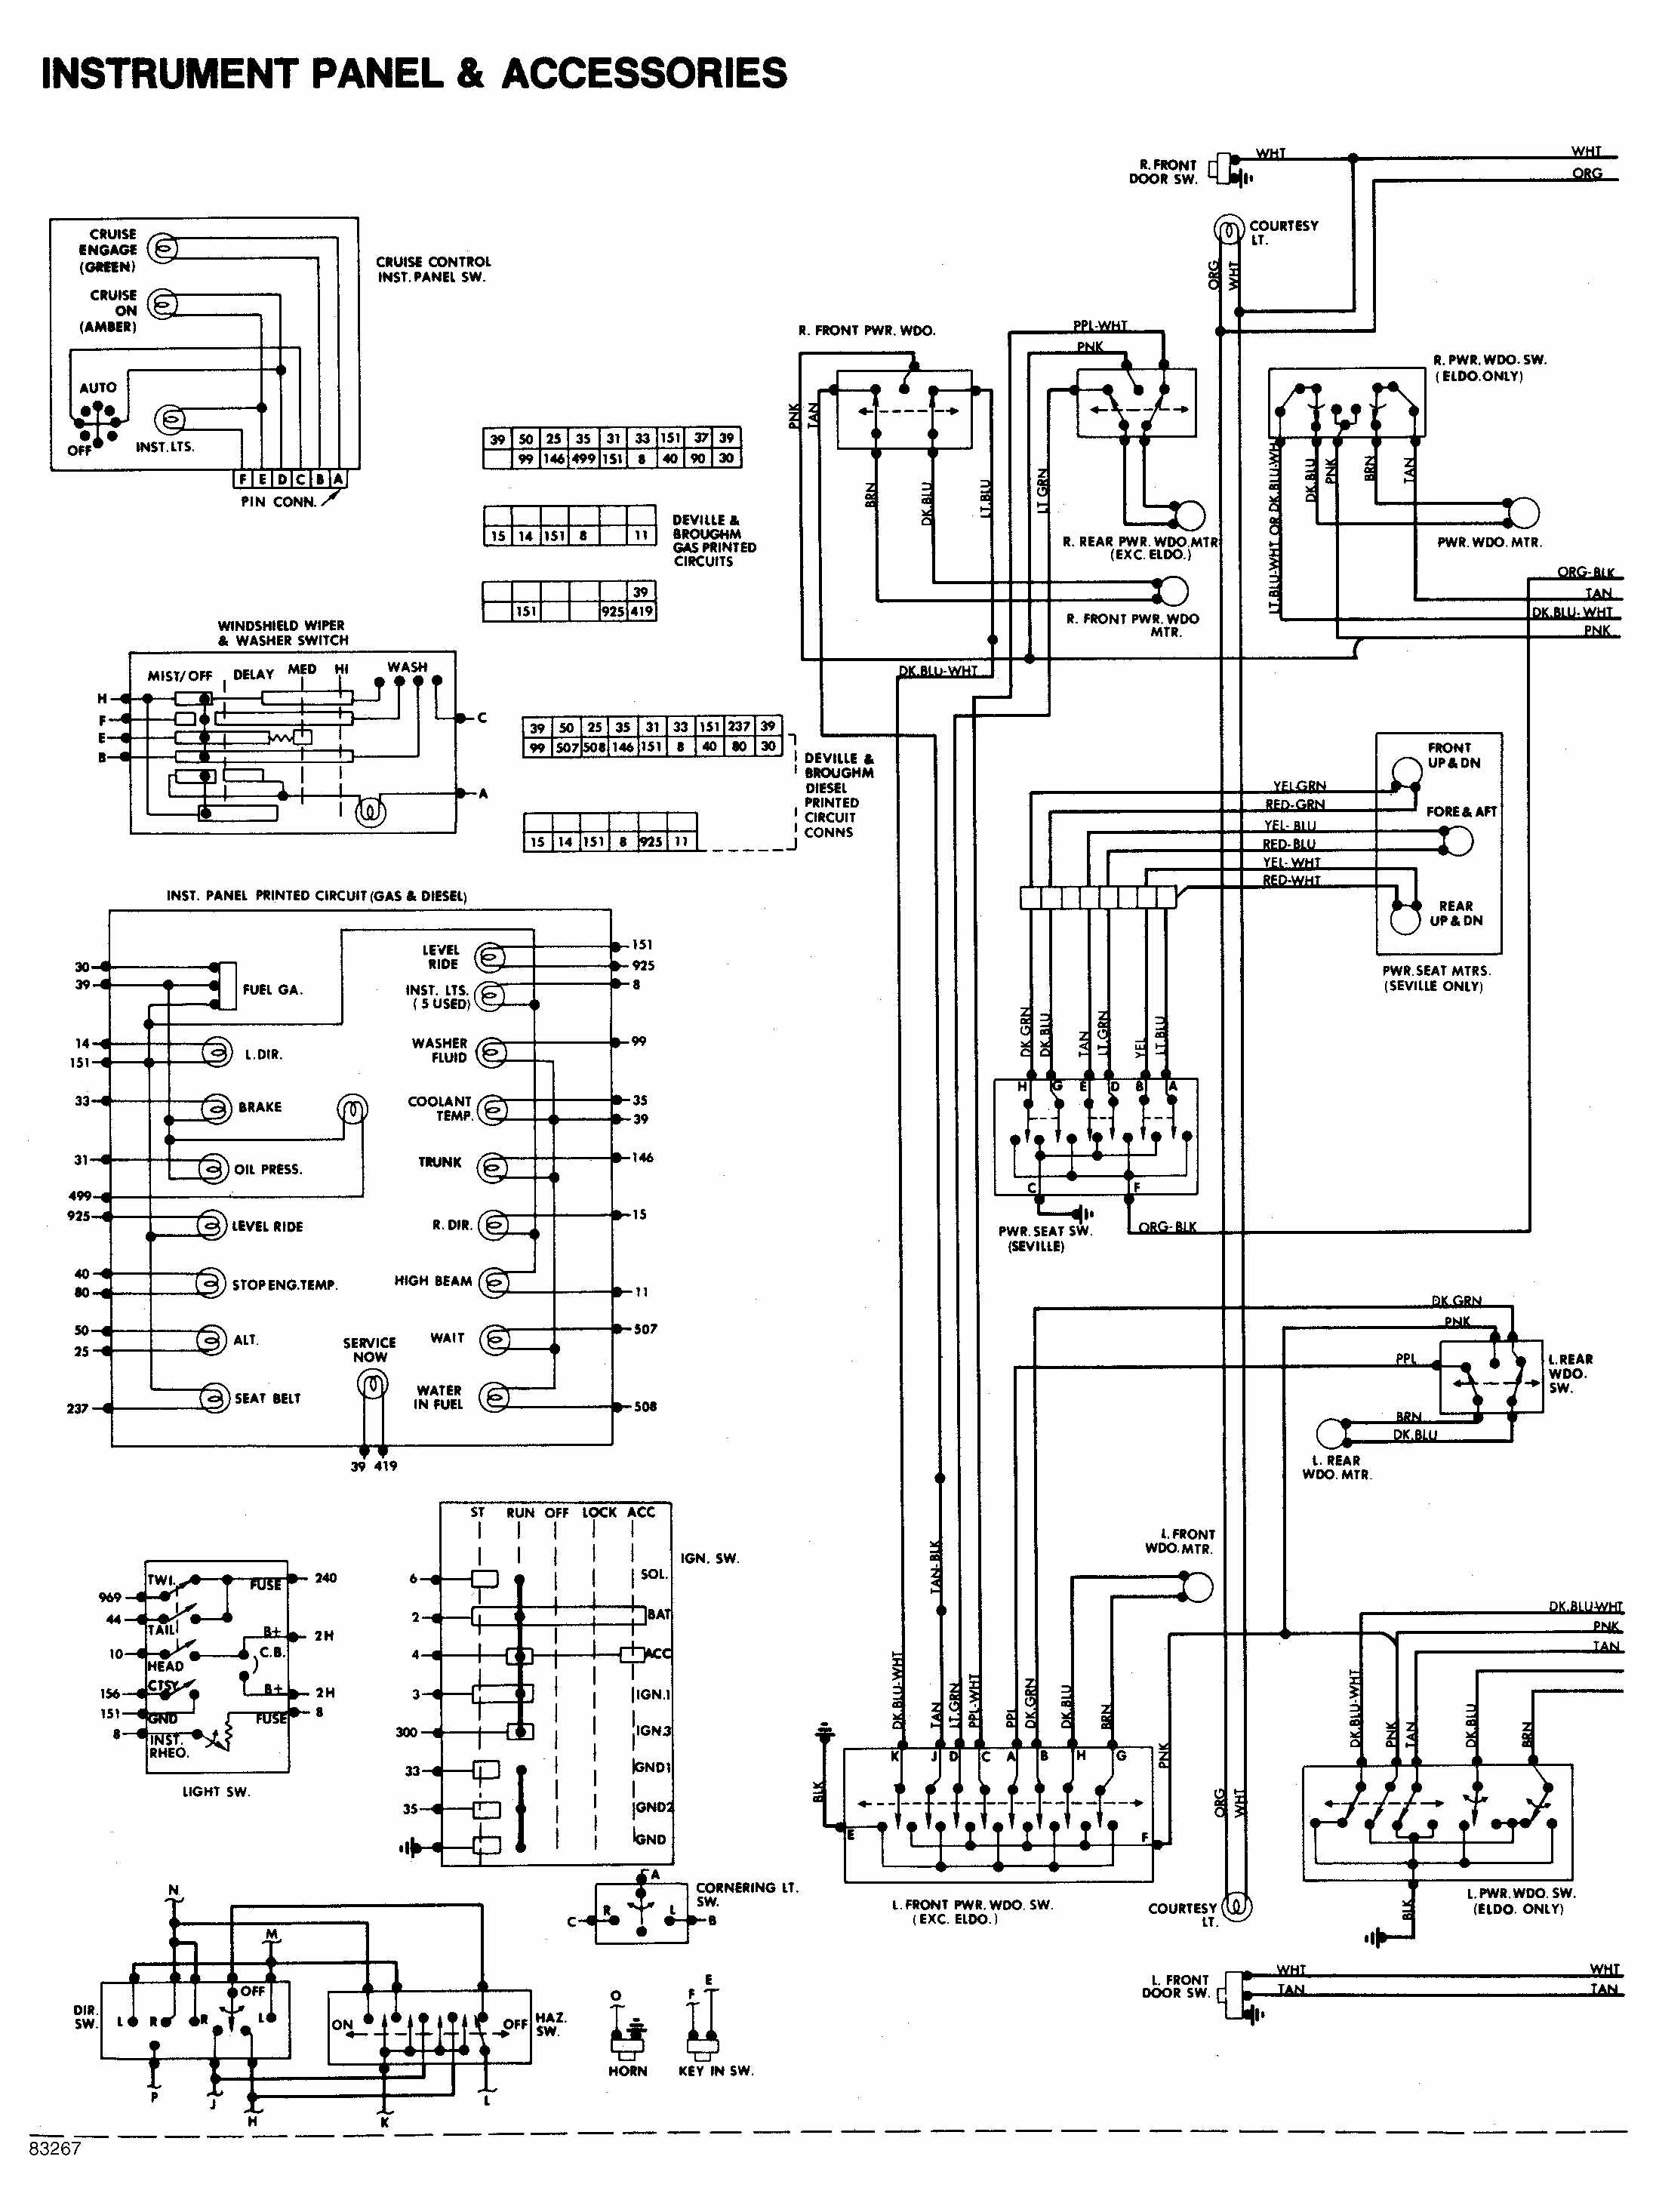 1965 el camino fuse diagram